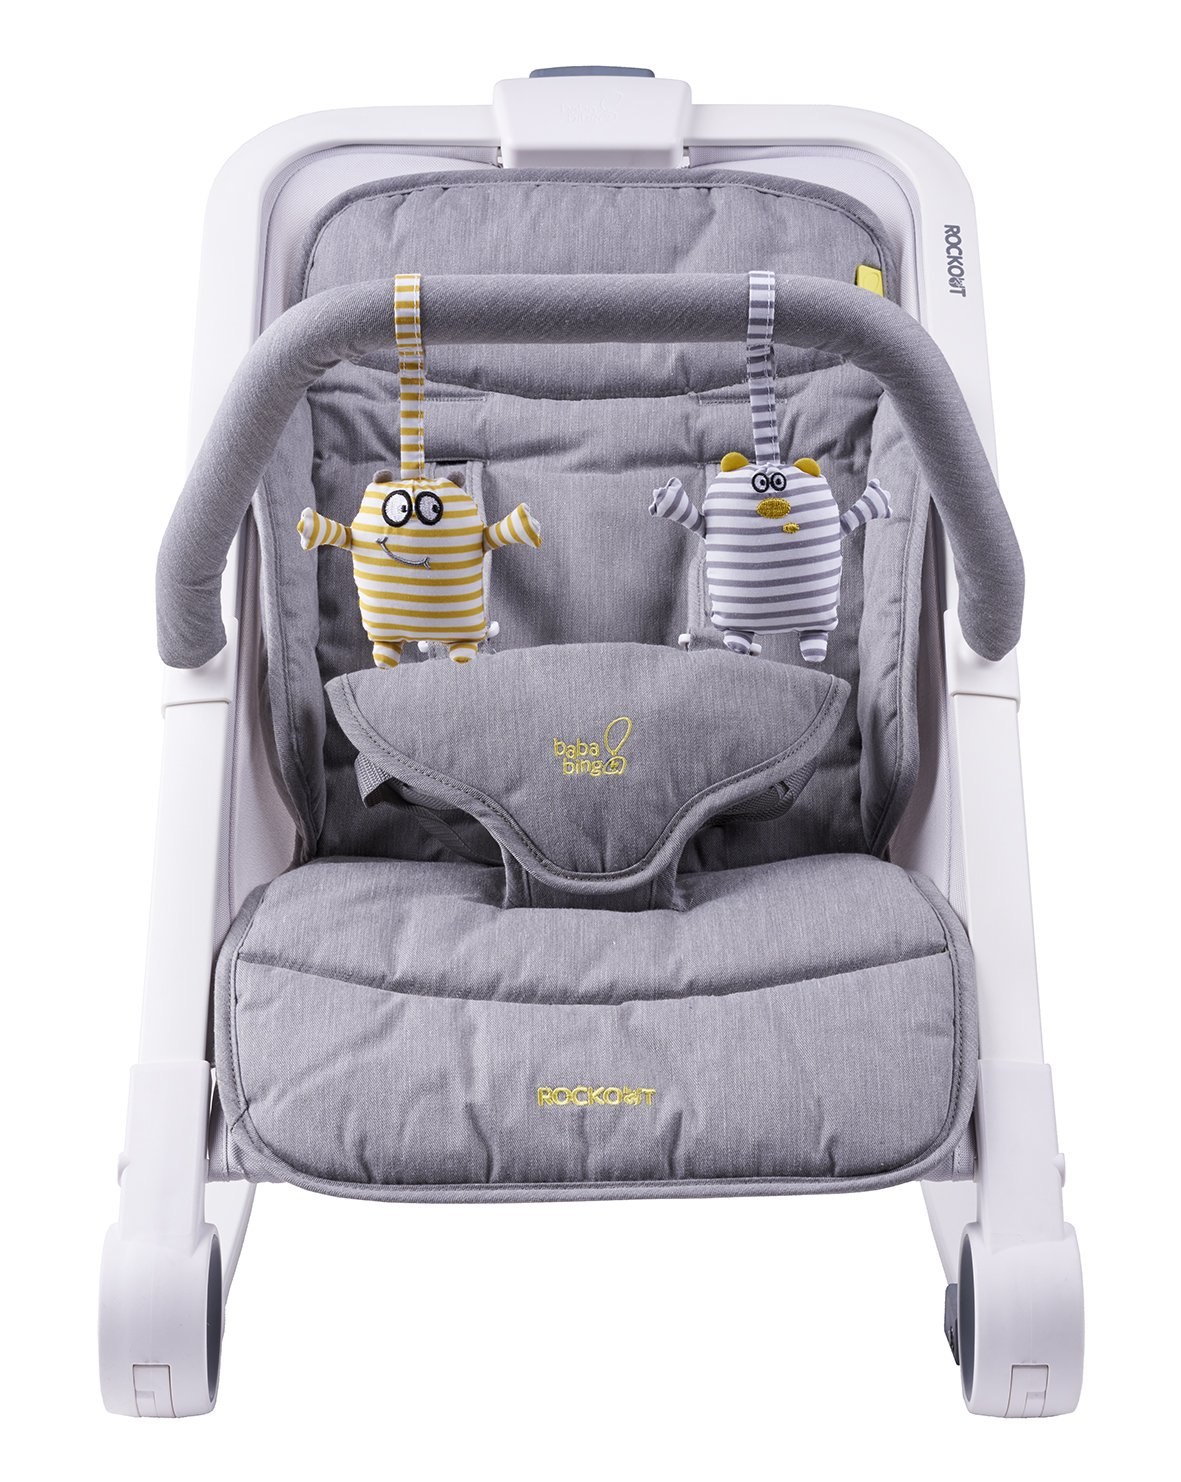 Bababing Rockout 3 Position Baby Rocker/Bouncer, Grey baba bing BB50-002